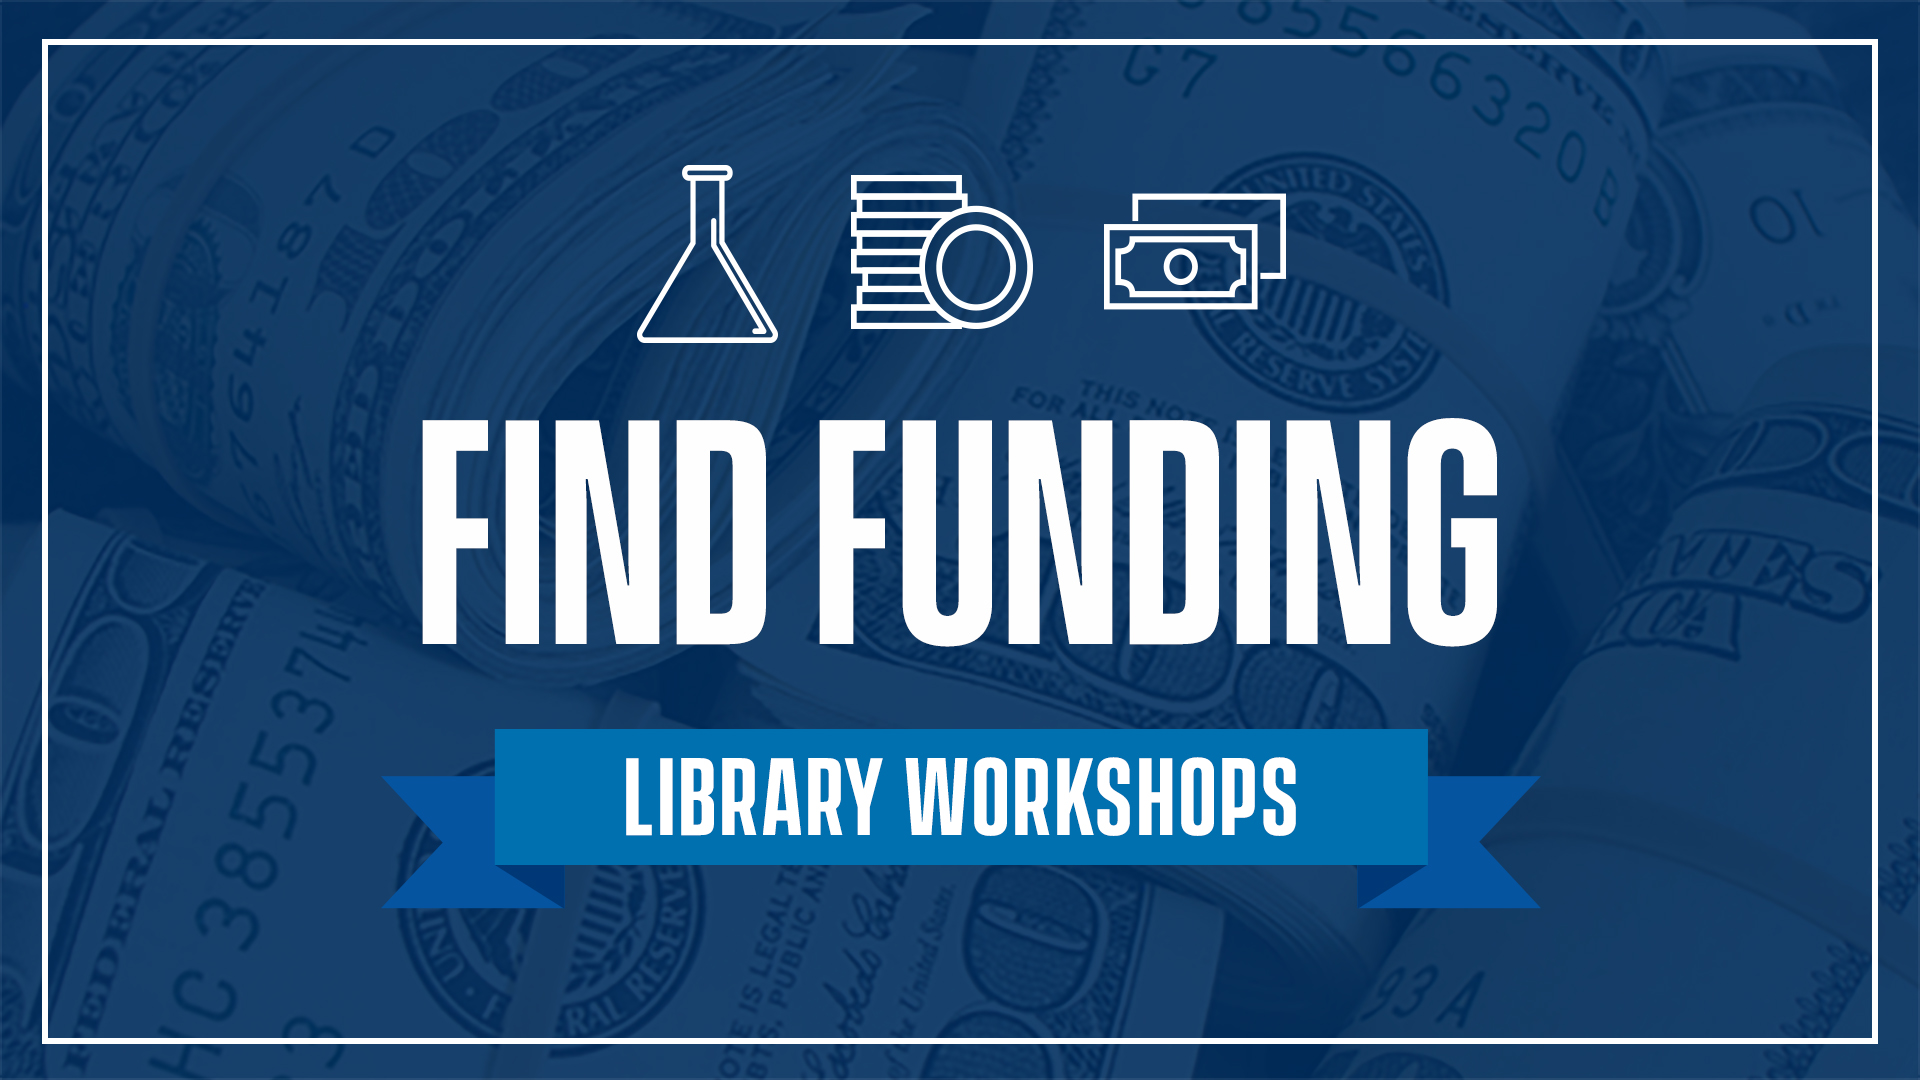 Find Funding: Library Workshops